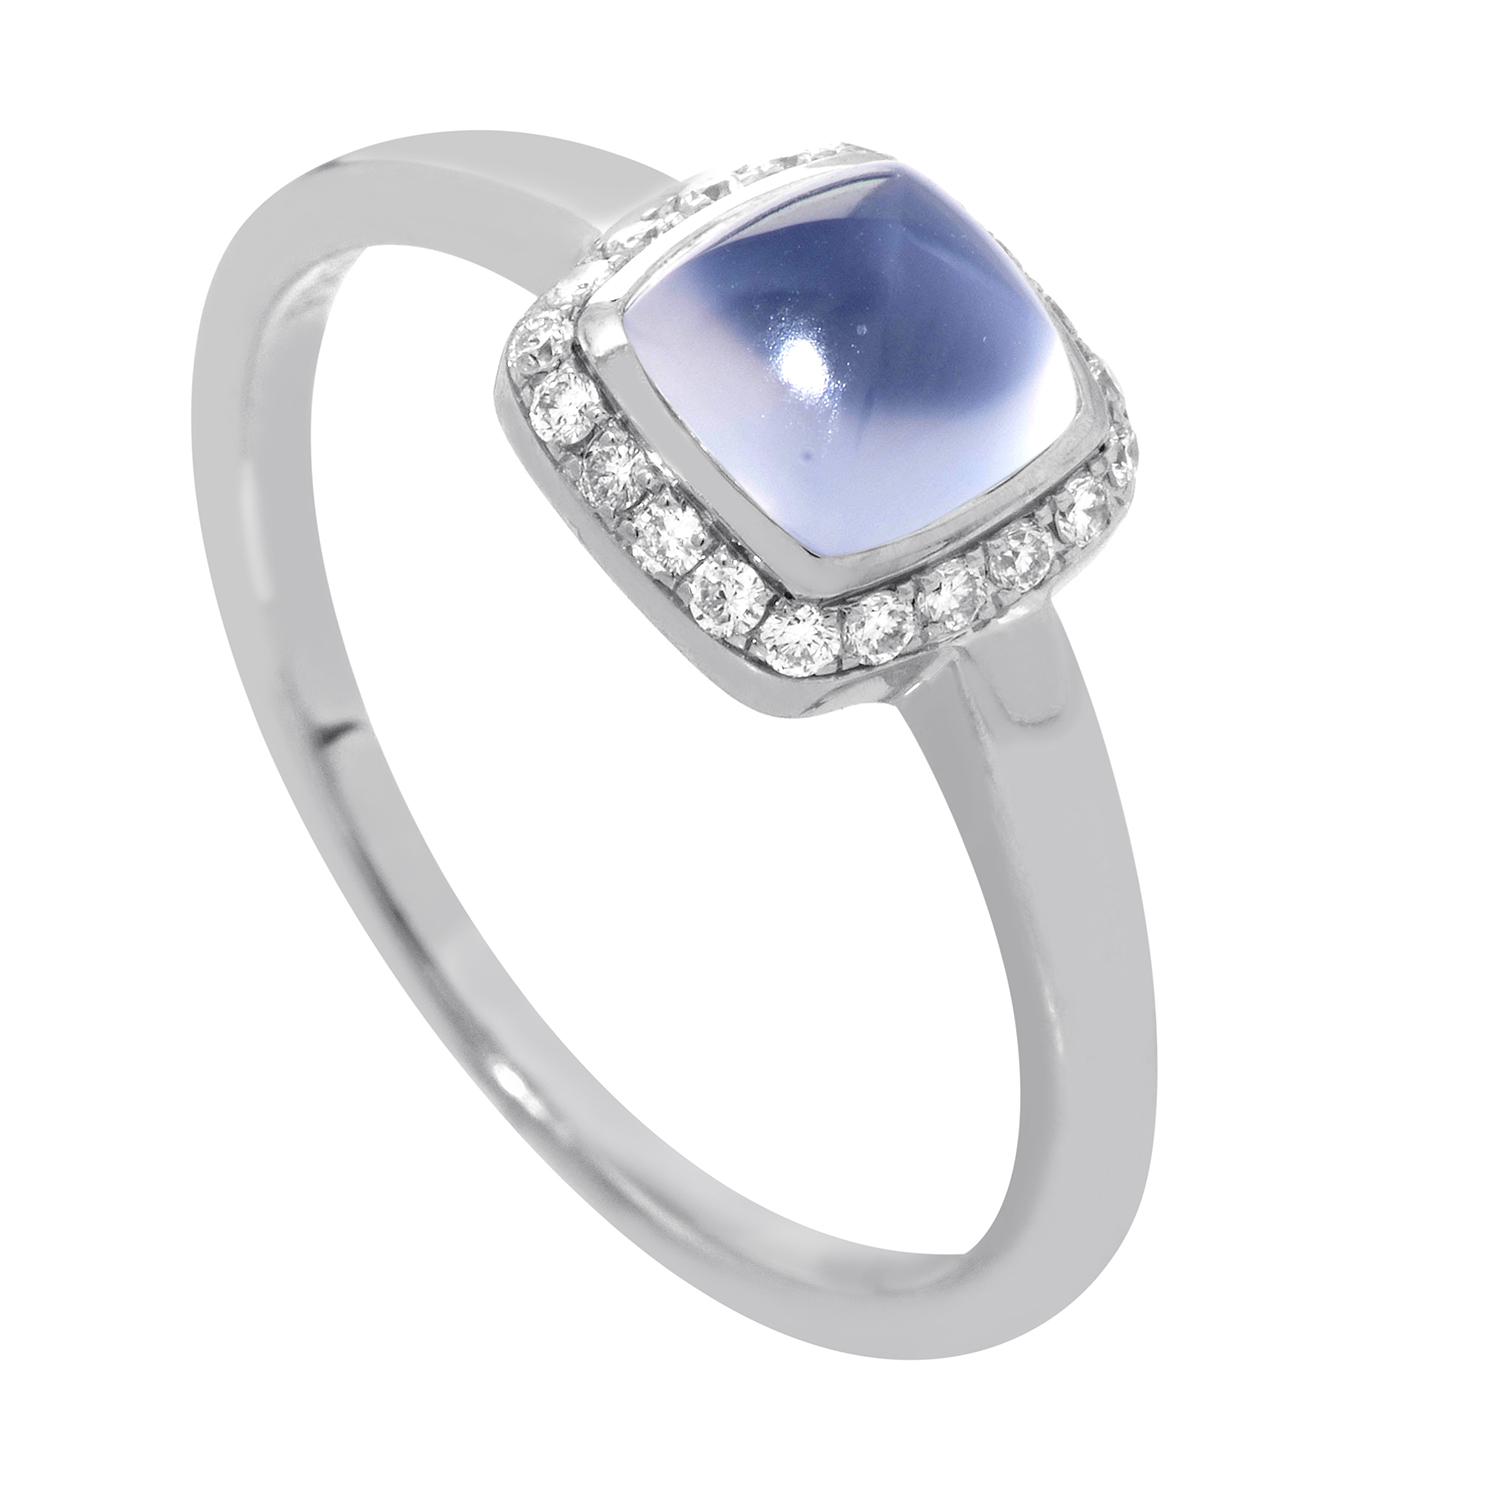 Pain de Sucre 18K White Gold Chalcedony & Diamond Ring